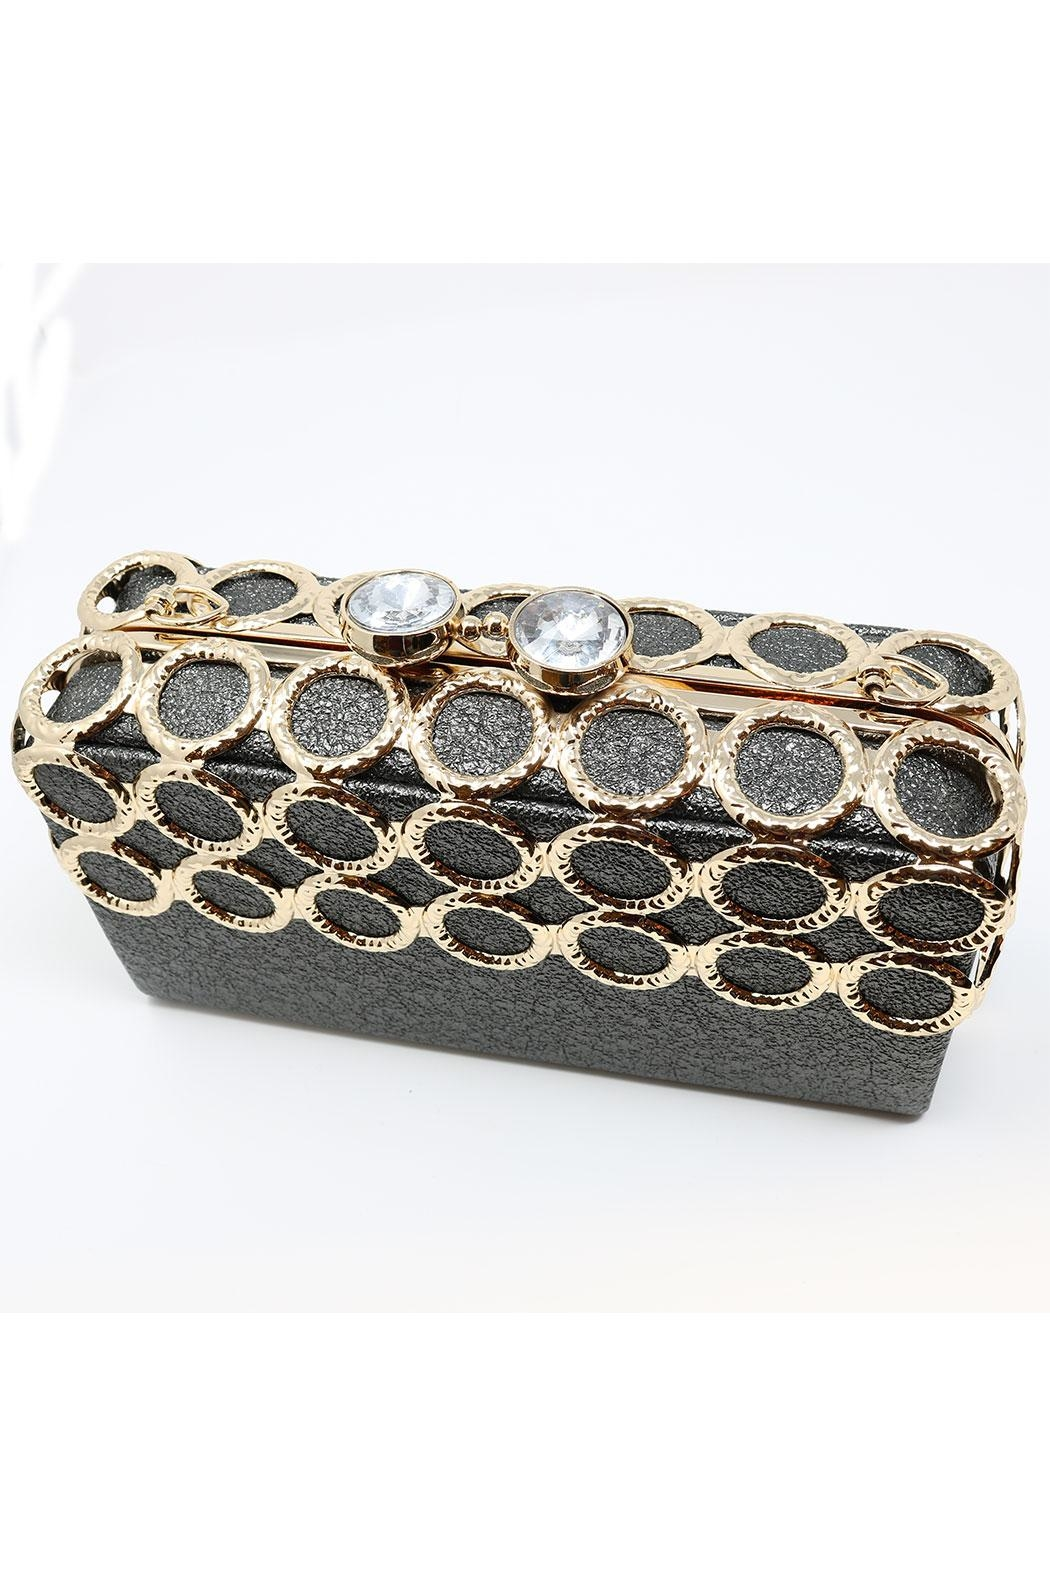 Nadya's Closet Metal Ring-Accent Clutch - Back Cropped Image